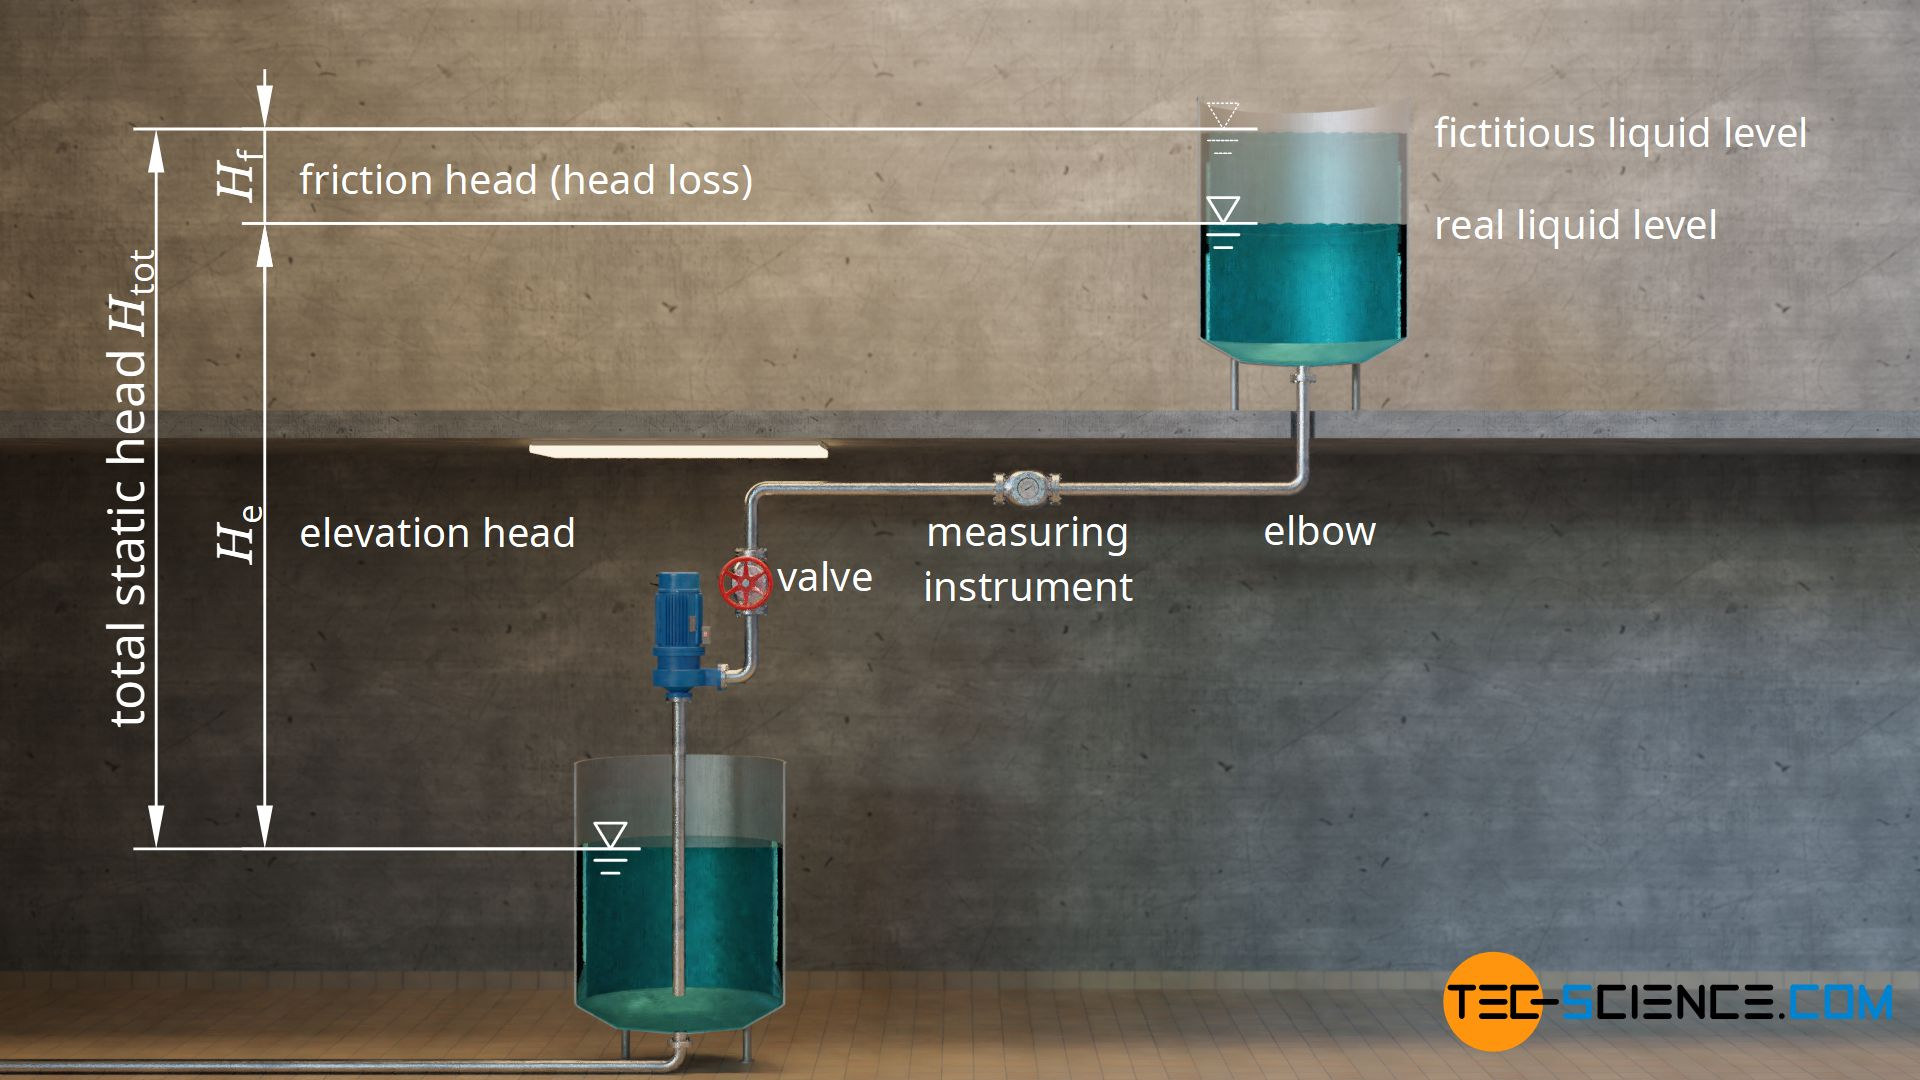 Total static head of a piping system as the sum of elevation head and friction head (head loss)